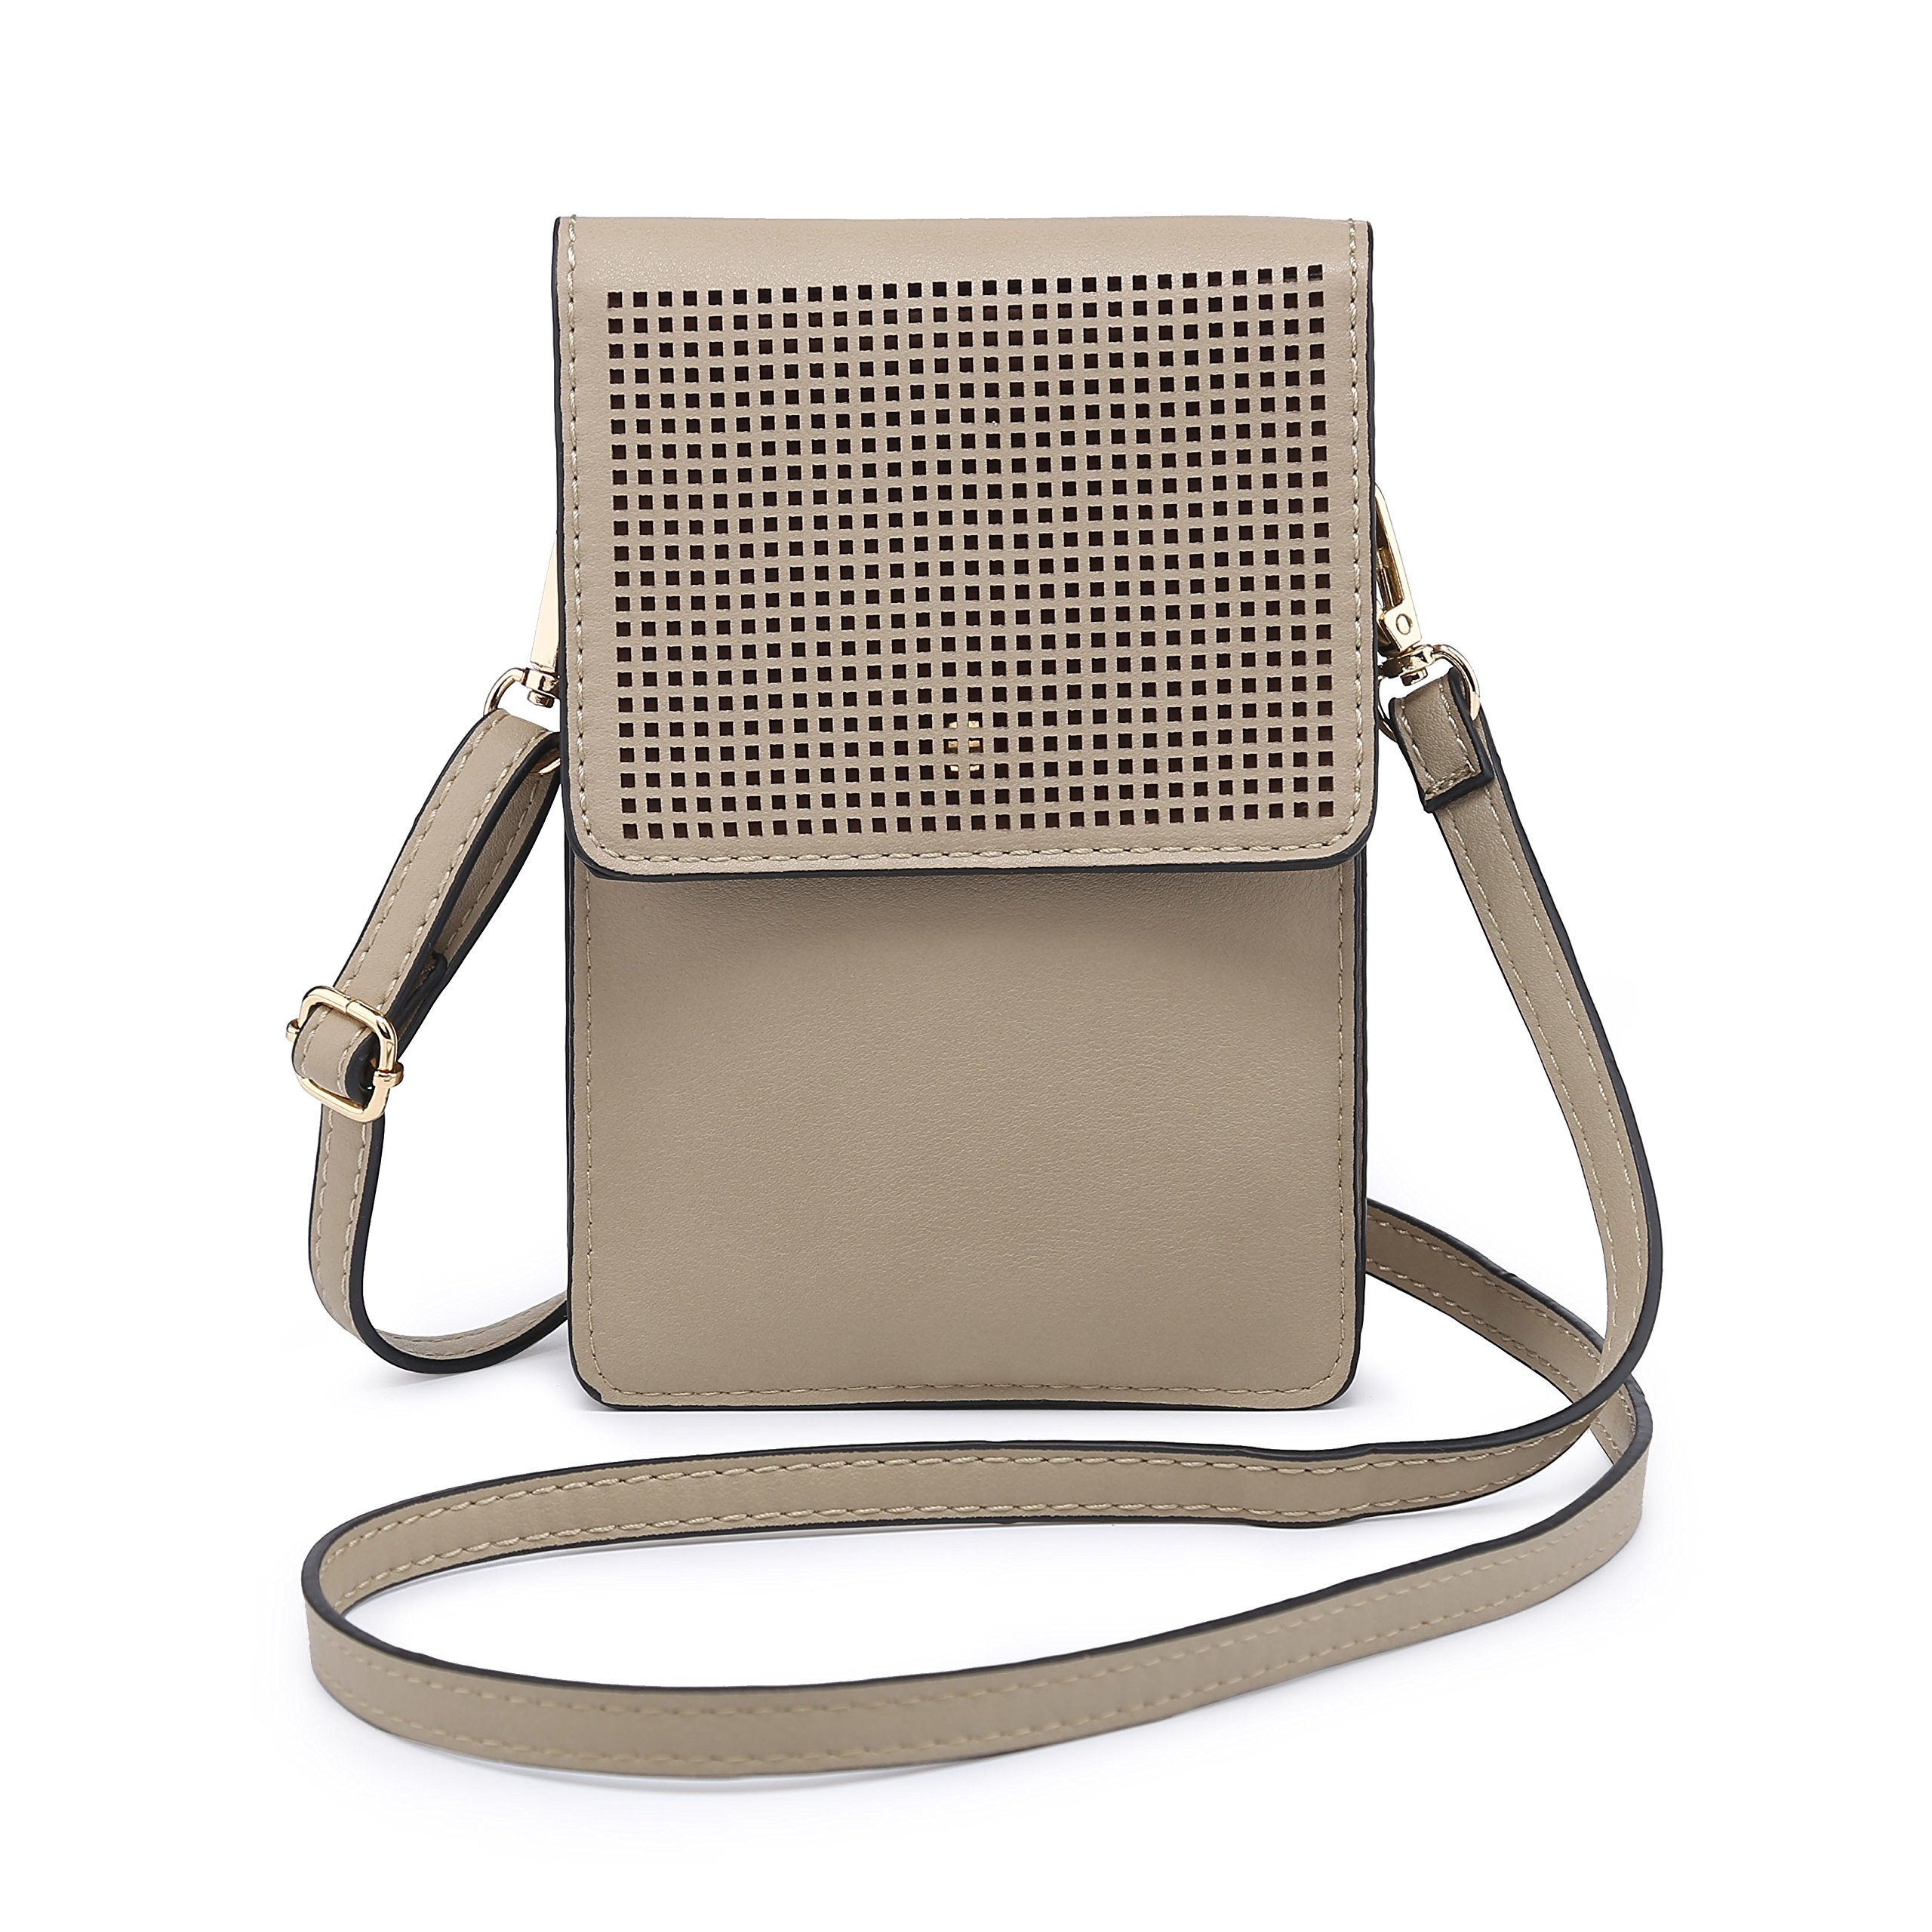 AFREDO FEDI Phone Pouch, Cell Phone Bag Mini Crossbody Purse for Women teens Girls Wallet for IPhone X 8 Plus Samsung S8 7 (Small, Beige)